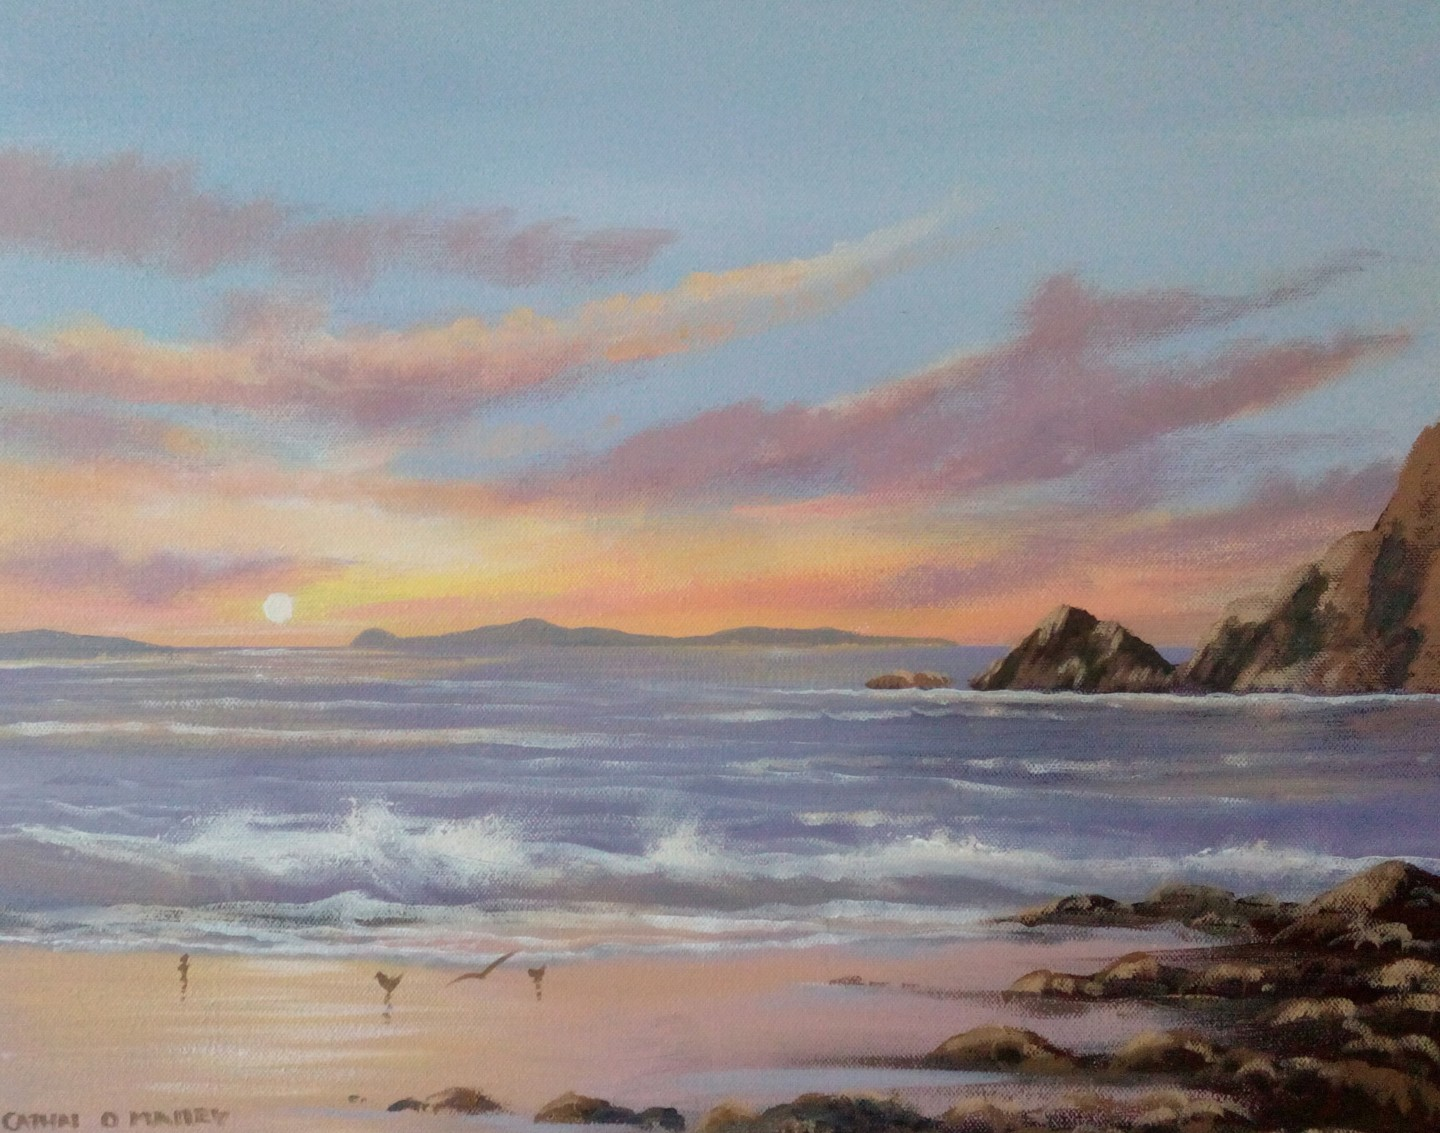 Cathal O Malley - Inishbofin sunset